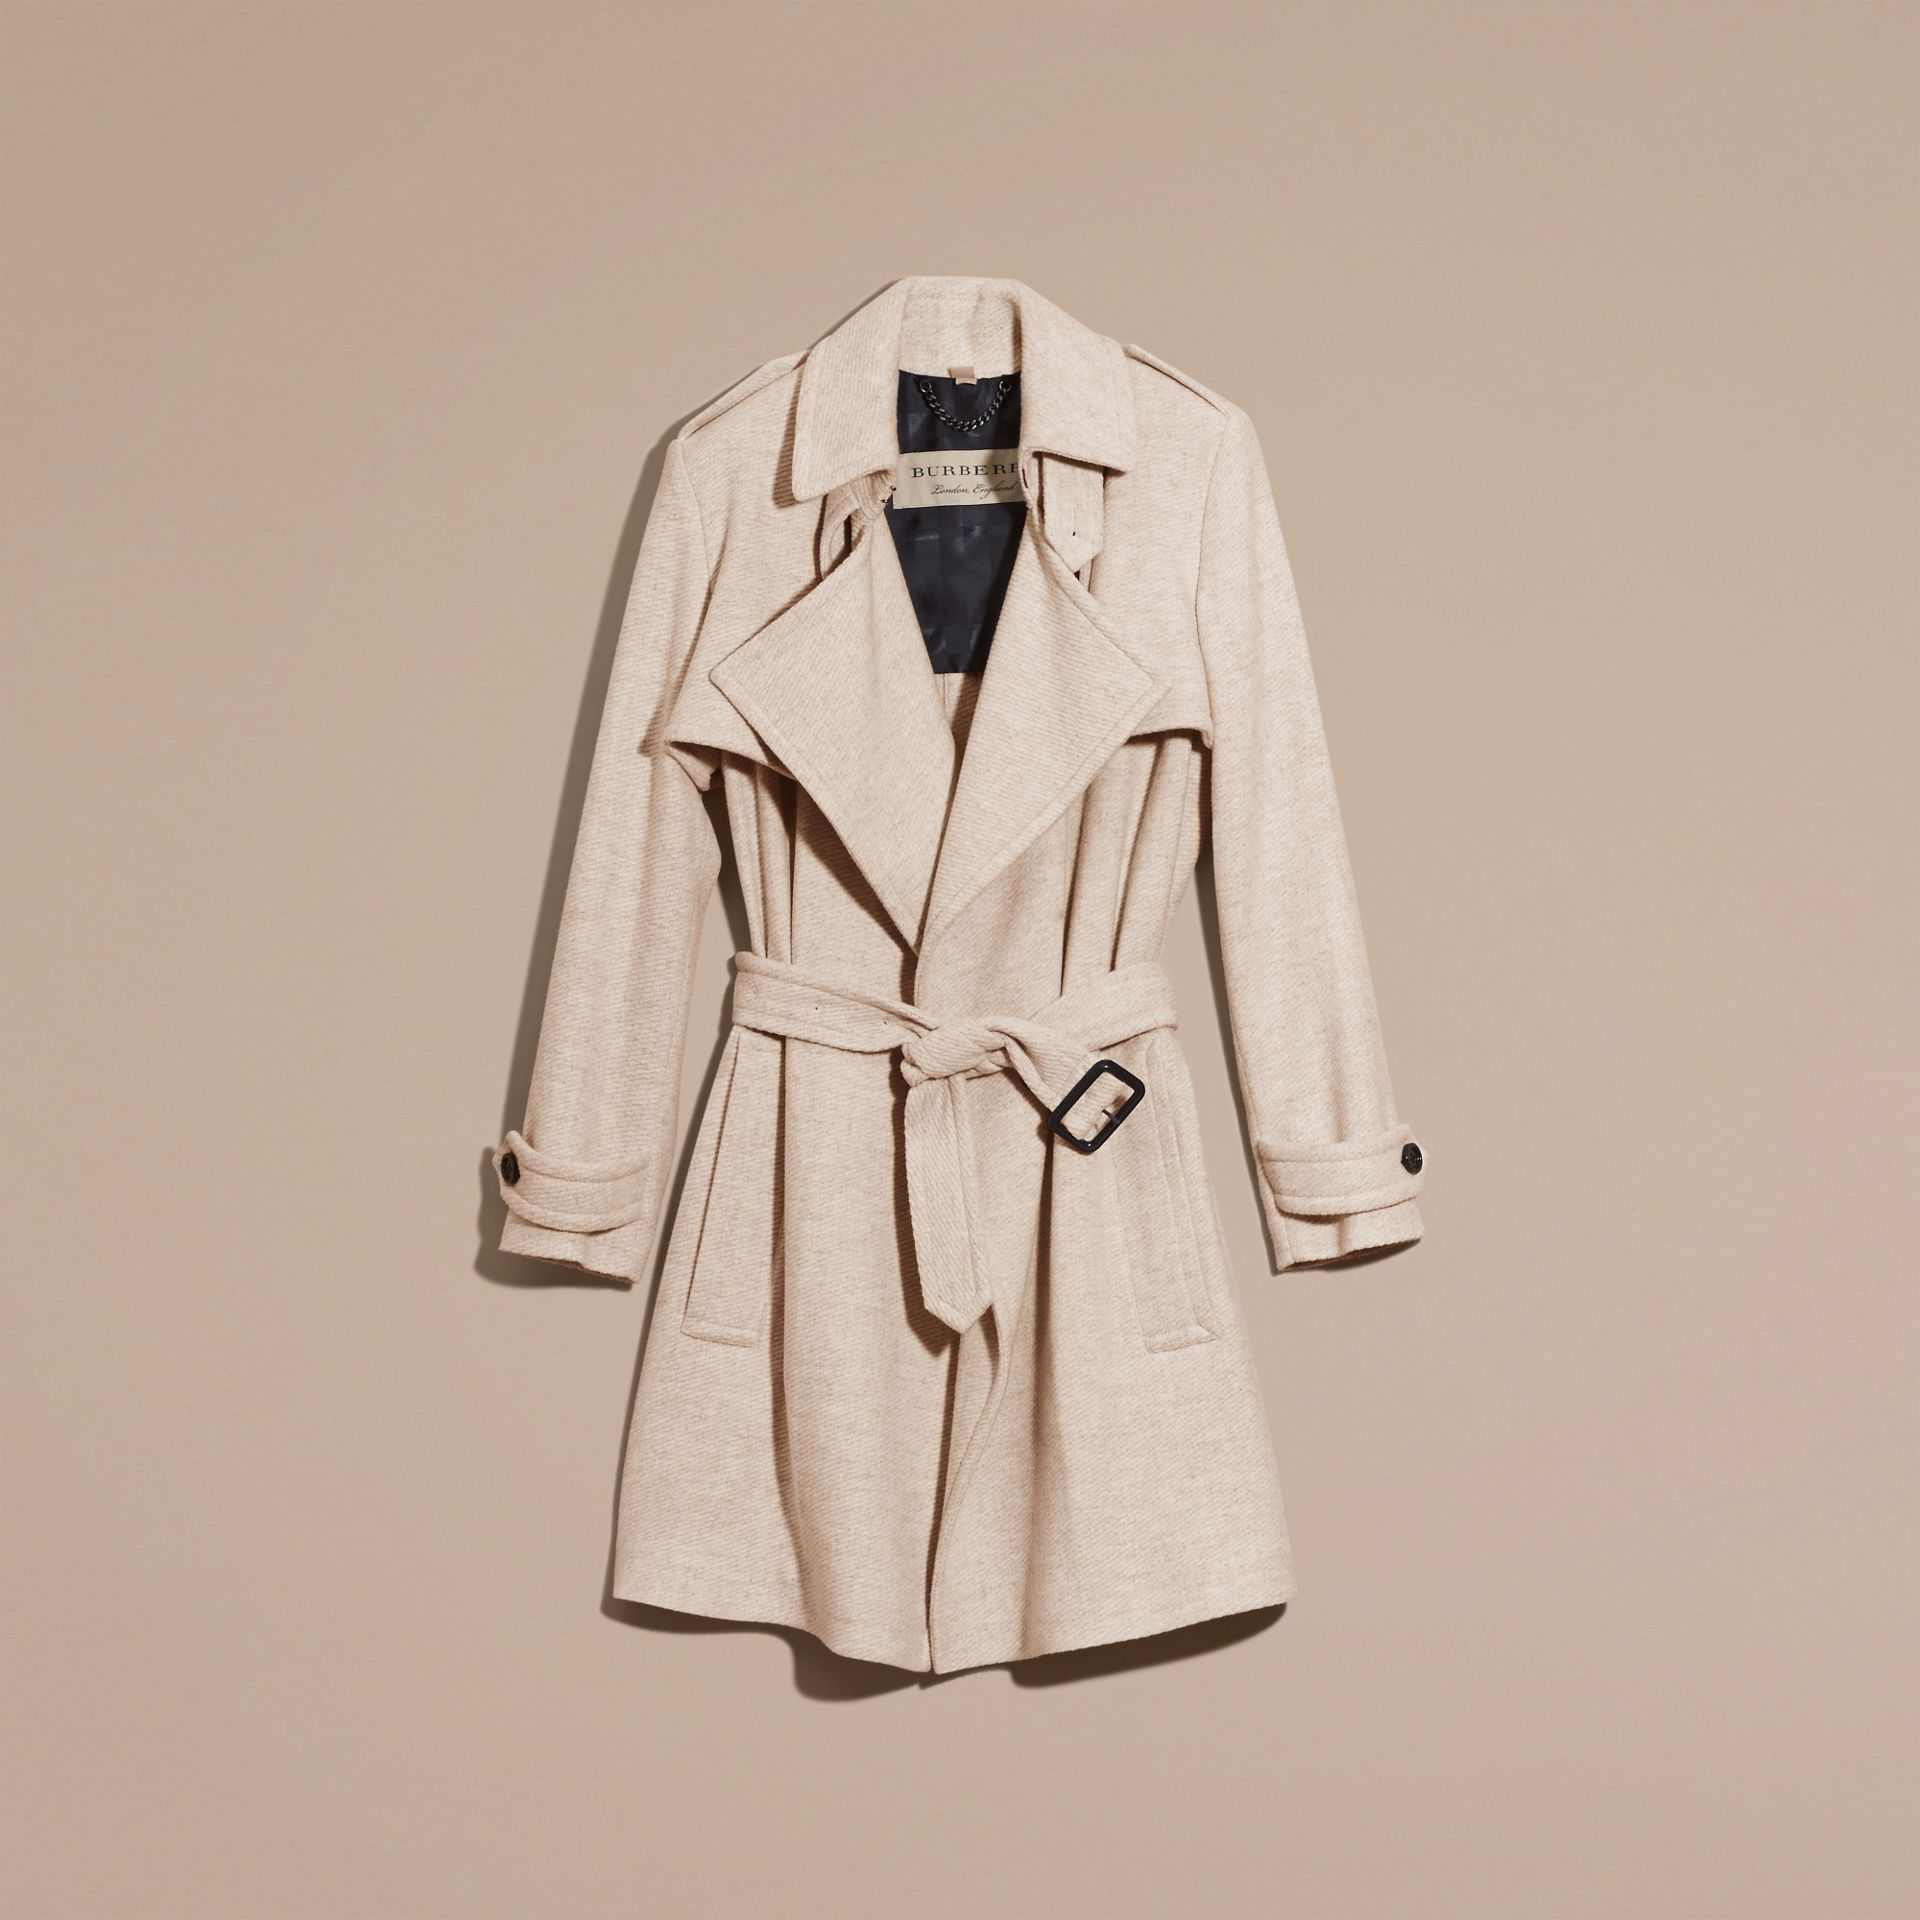 Blanc/gris Trench-coat portefeuille en cachemire - photo de la galerie 4